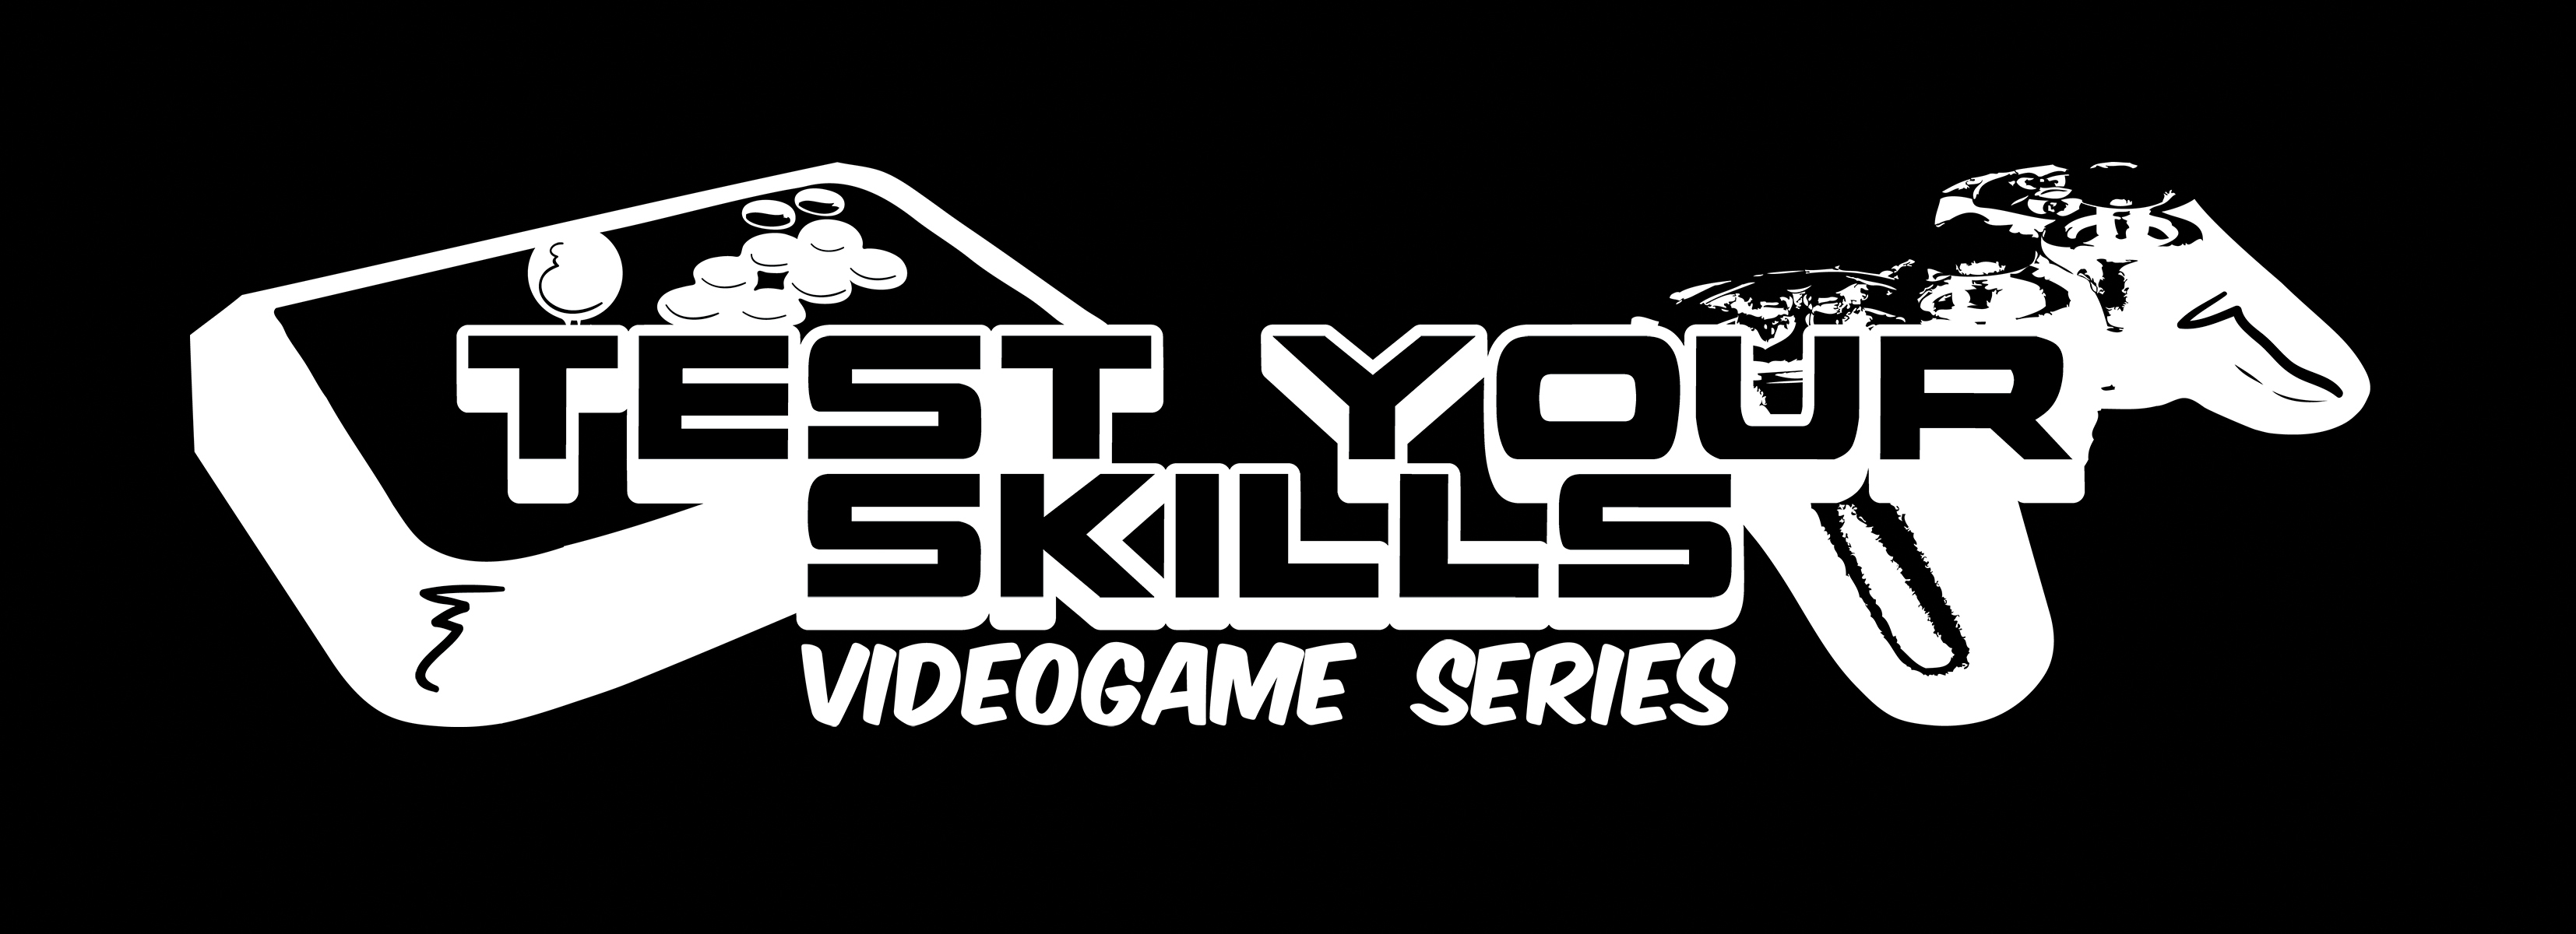 Test Your Skills  Black VideoGame logo